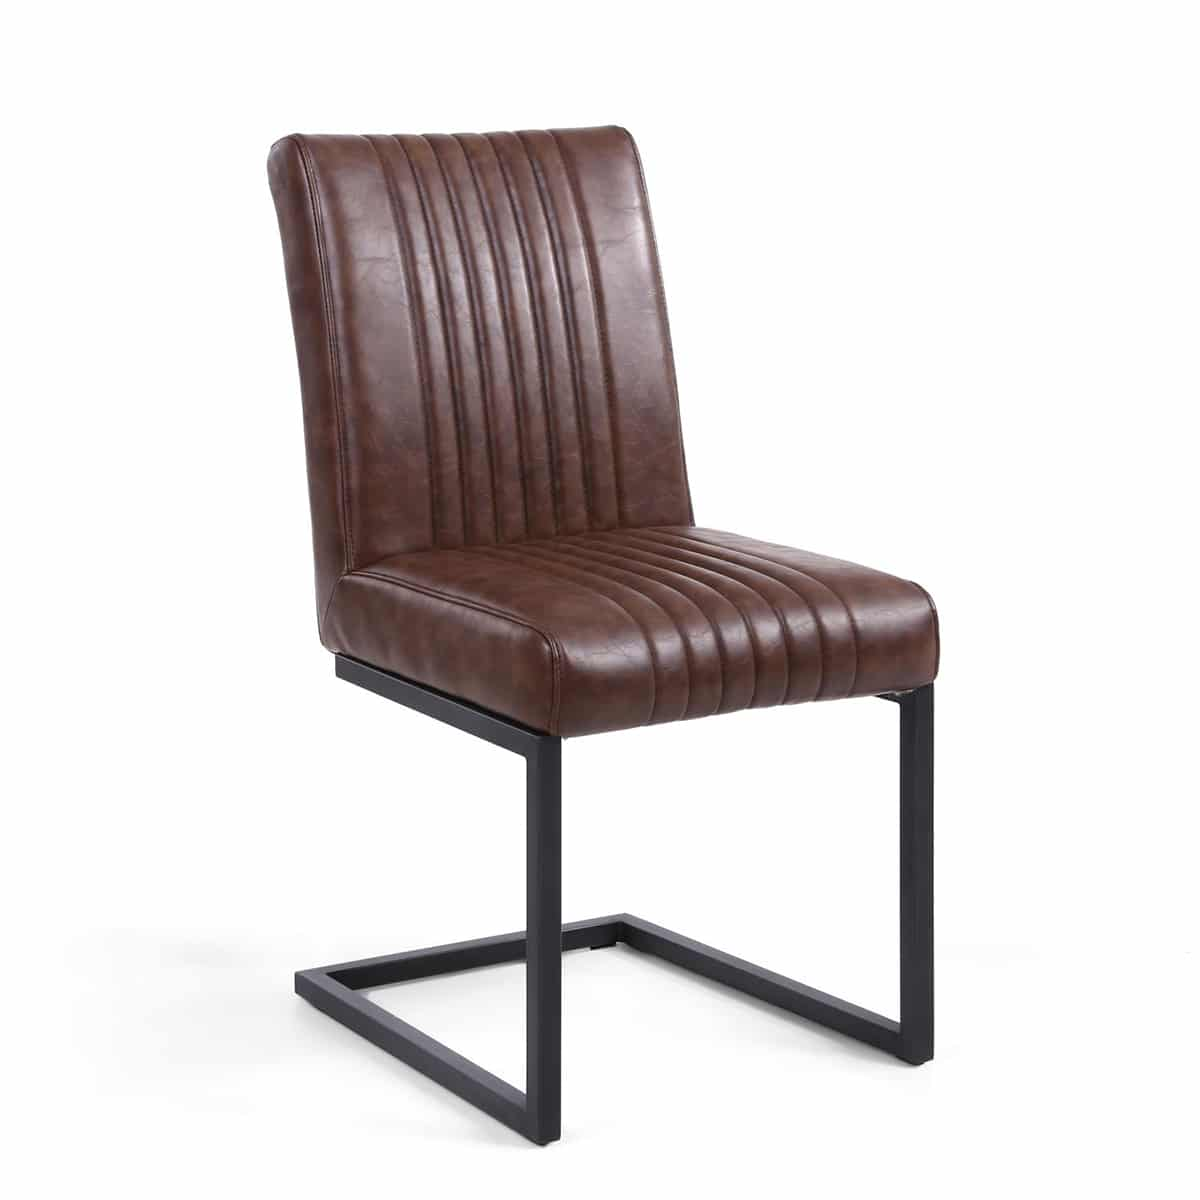 Selsey Brown Dining Chair - SELBROWN